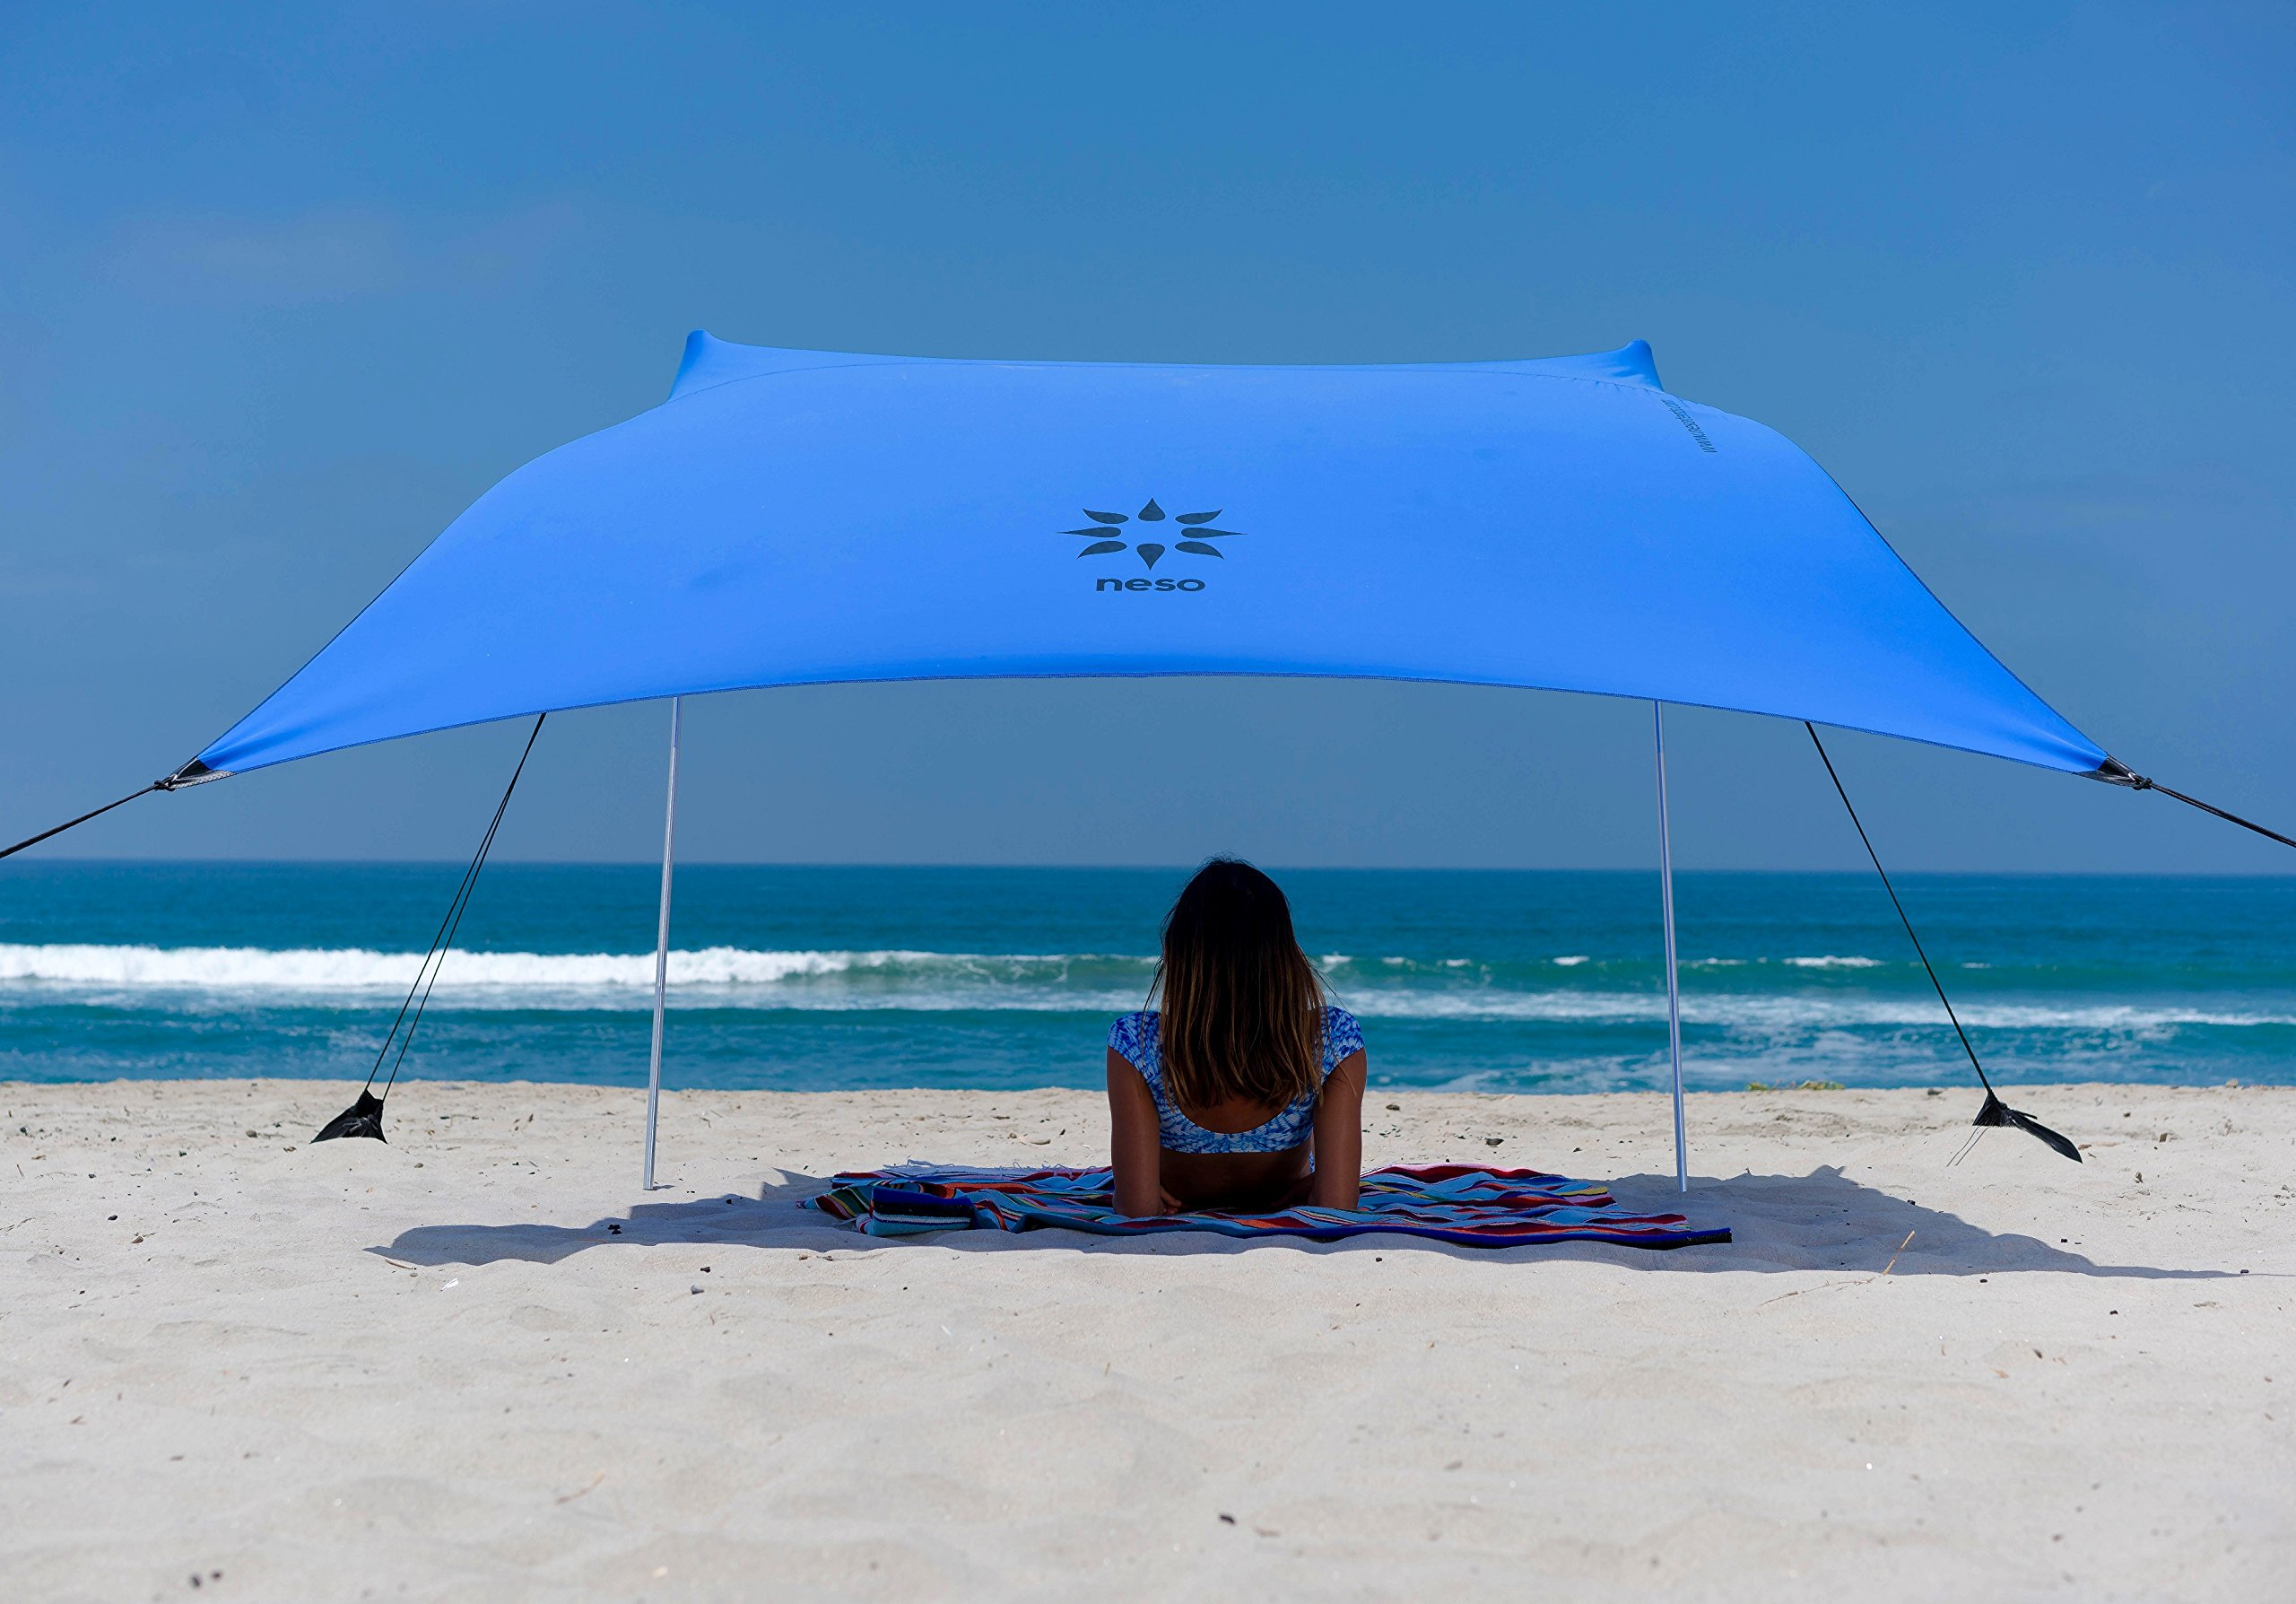 Neso Tents Beach Tent with Sand Anchor, Portable Canopy Sun Shelter, 7 x 7ft - Patented Reinforced Corners - Periwinkle Blue by Neso